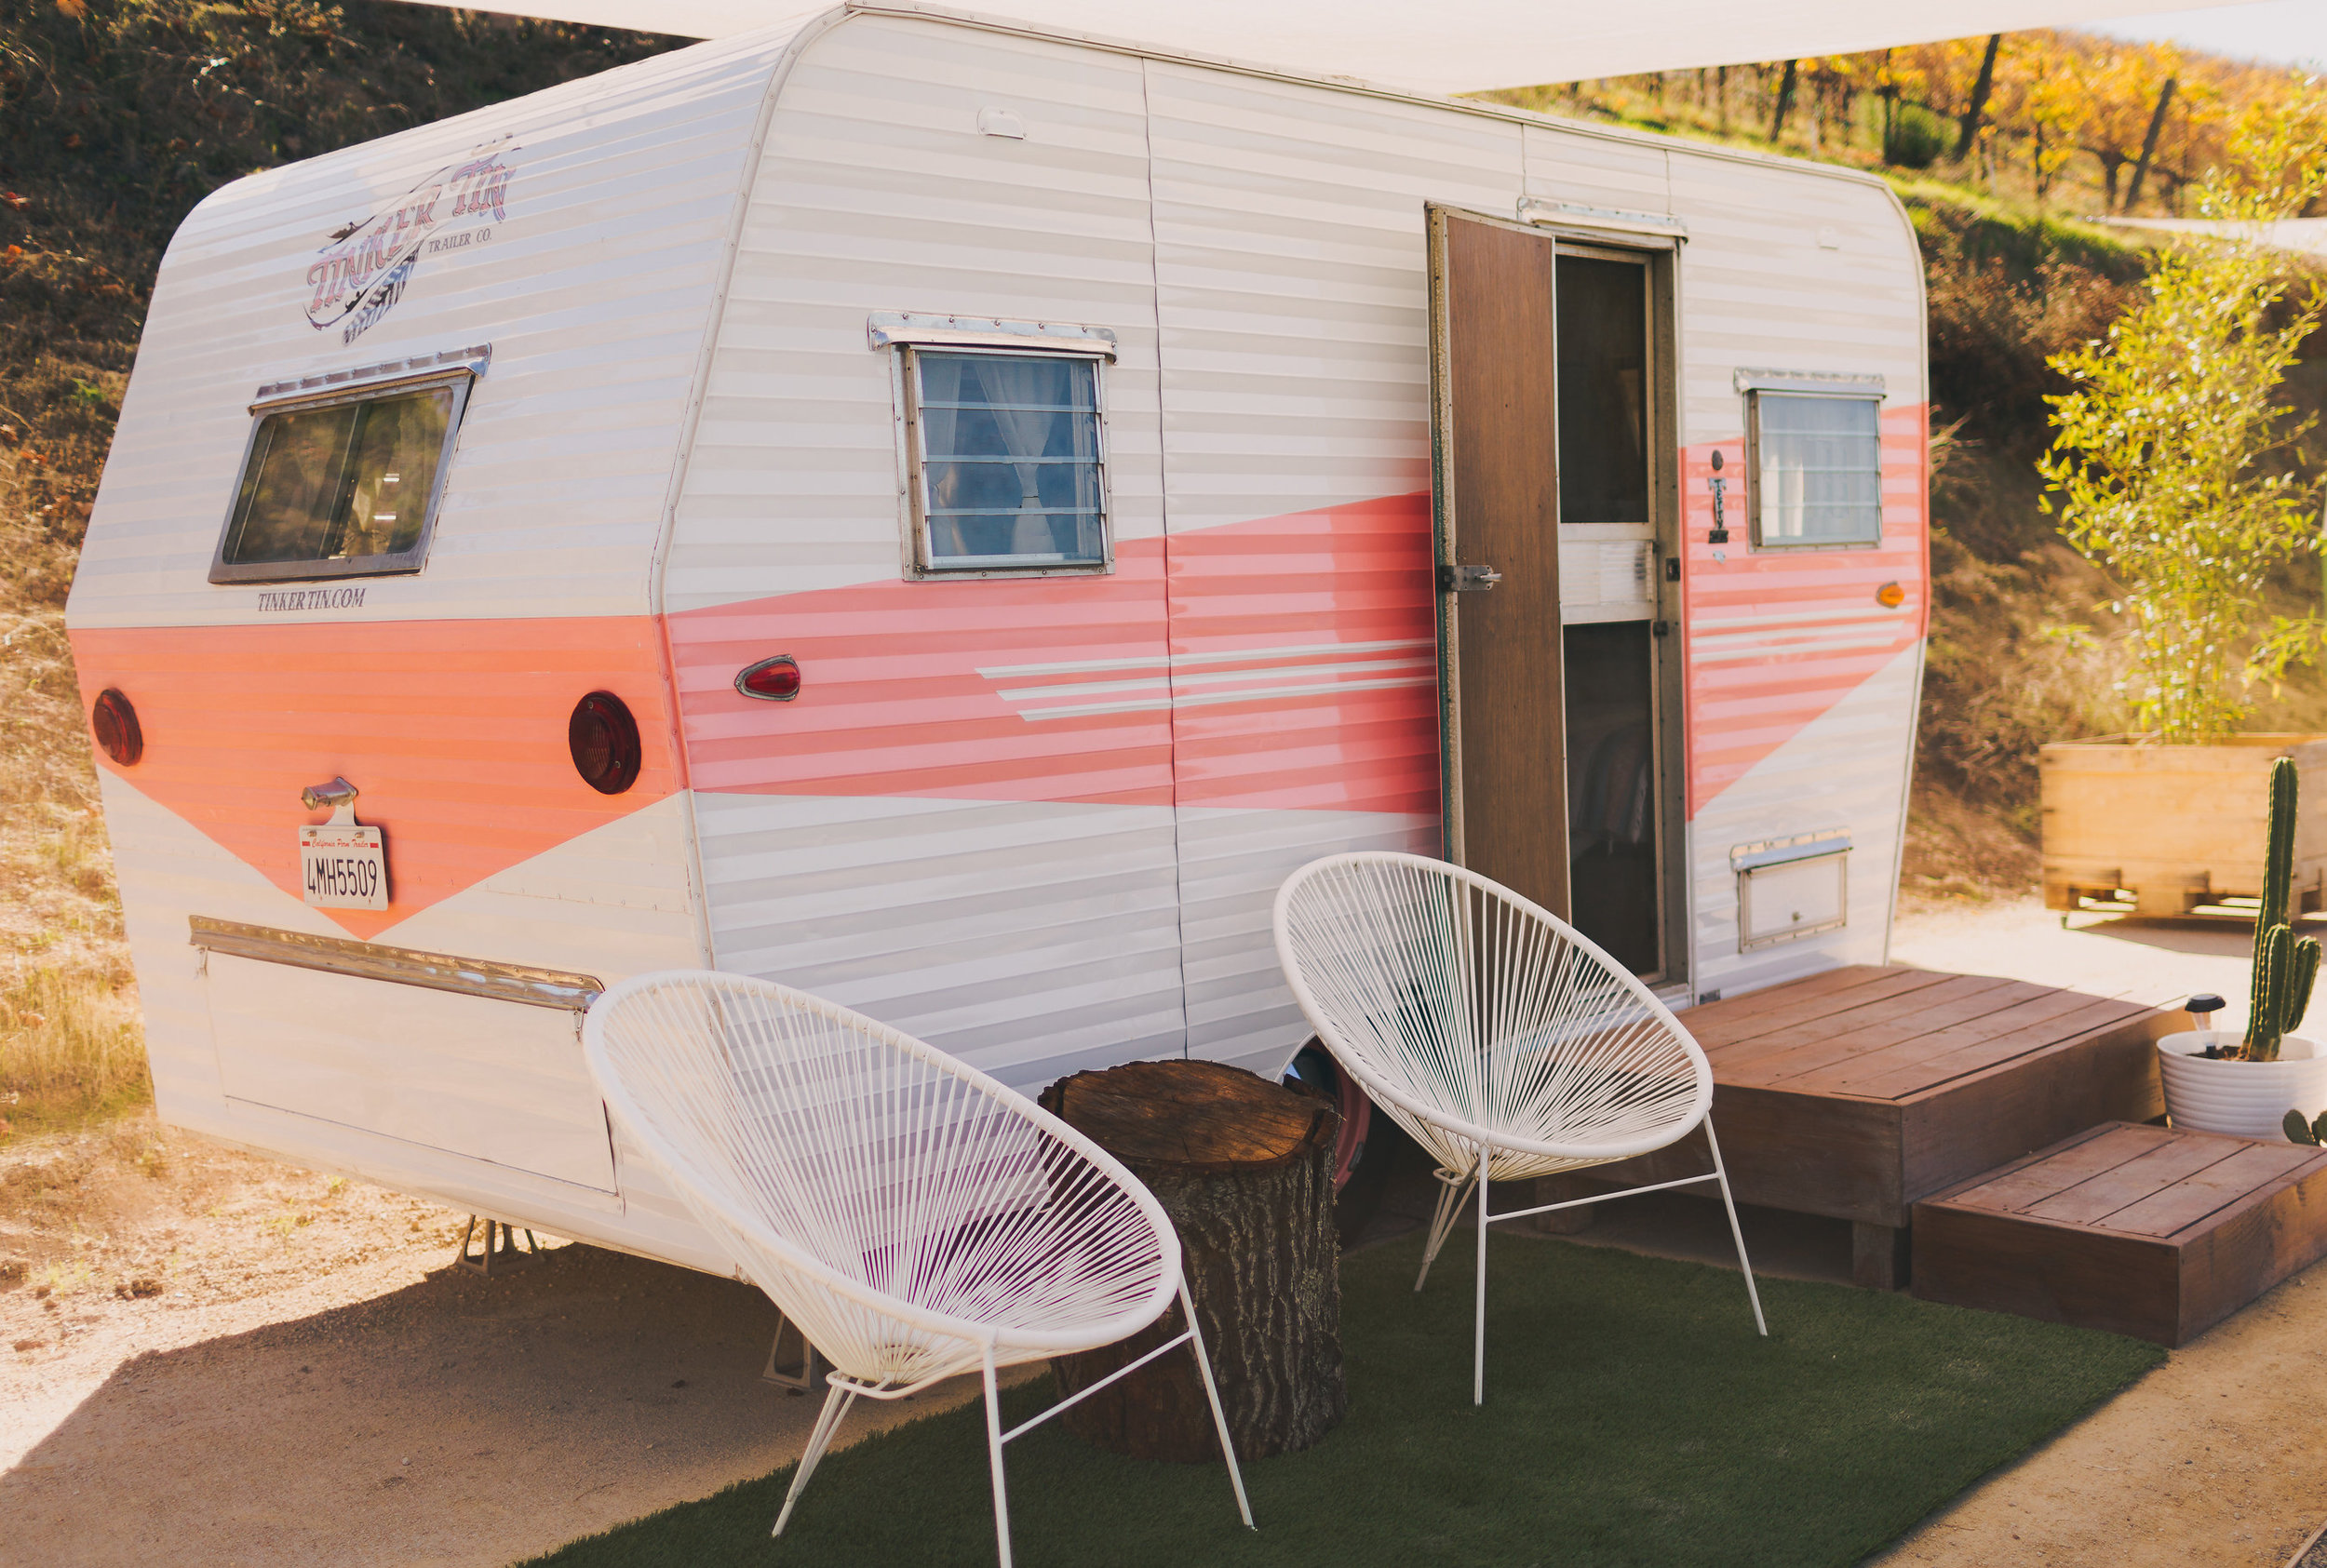 1950s VINTAGE pink camper TRAILER, canned ham, AVAILABLE FOR MOVIE AND PRODUCTION RENTALS, FOR BACKSTAGE LOUNGES, FILMING, TV & MOVIES, FOR HAIR AND MAKEUP, COMMERCIAL AND CATALOGUE PHOTO SHOOTS & MORE